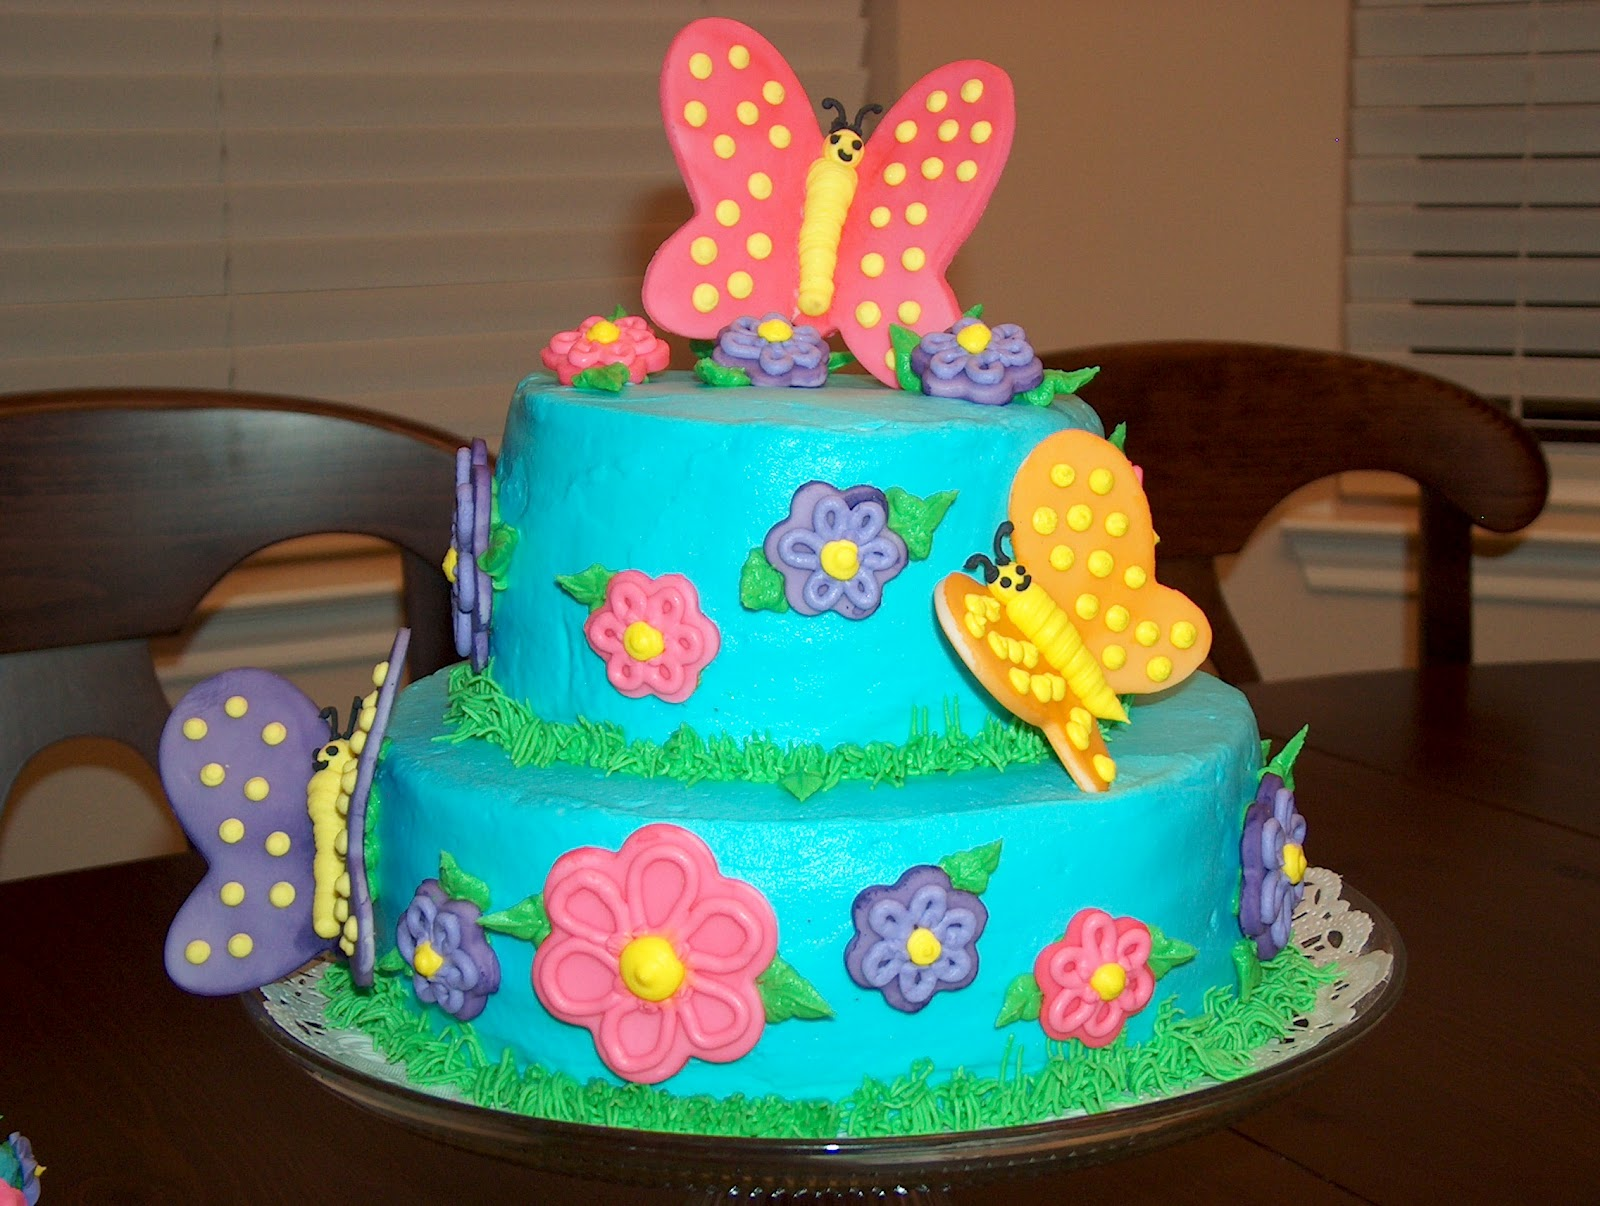 Decoration Ideas Of Cake : Themed Cakes, Birthday Cakes, Wedding Cakes: ButterFly ...